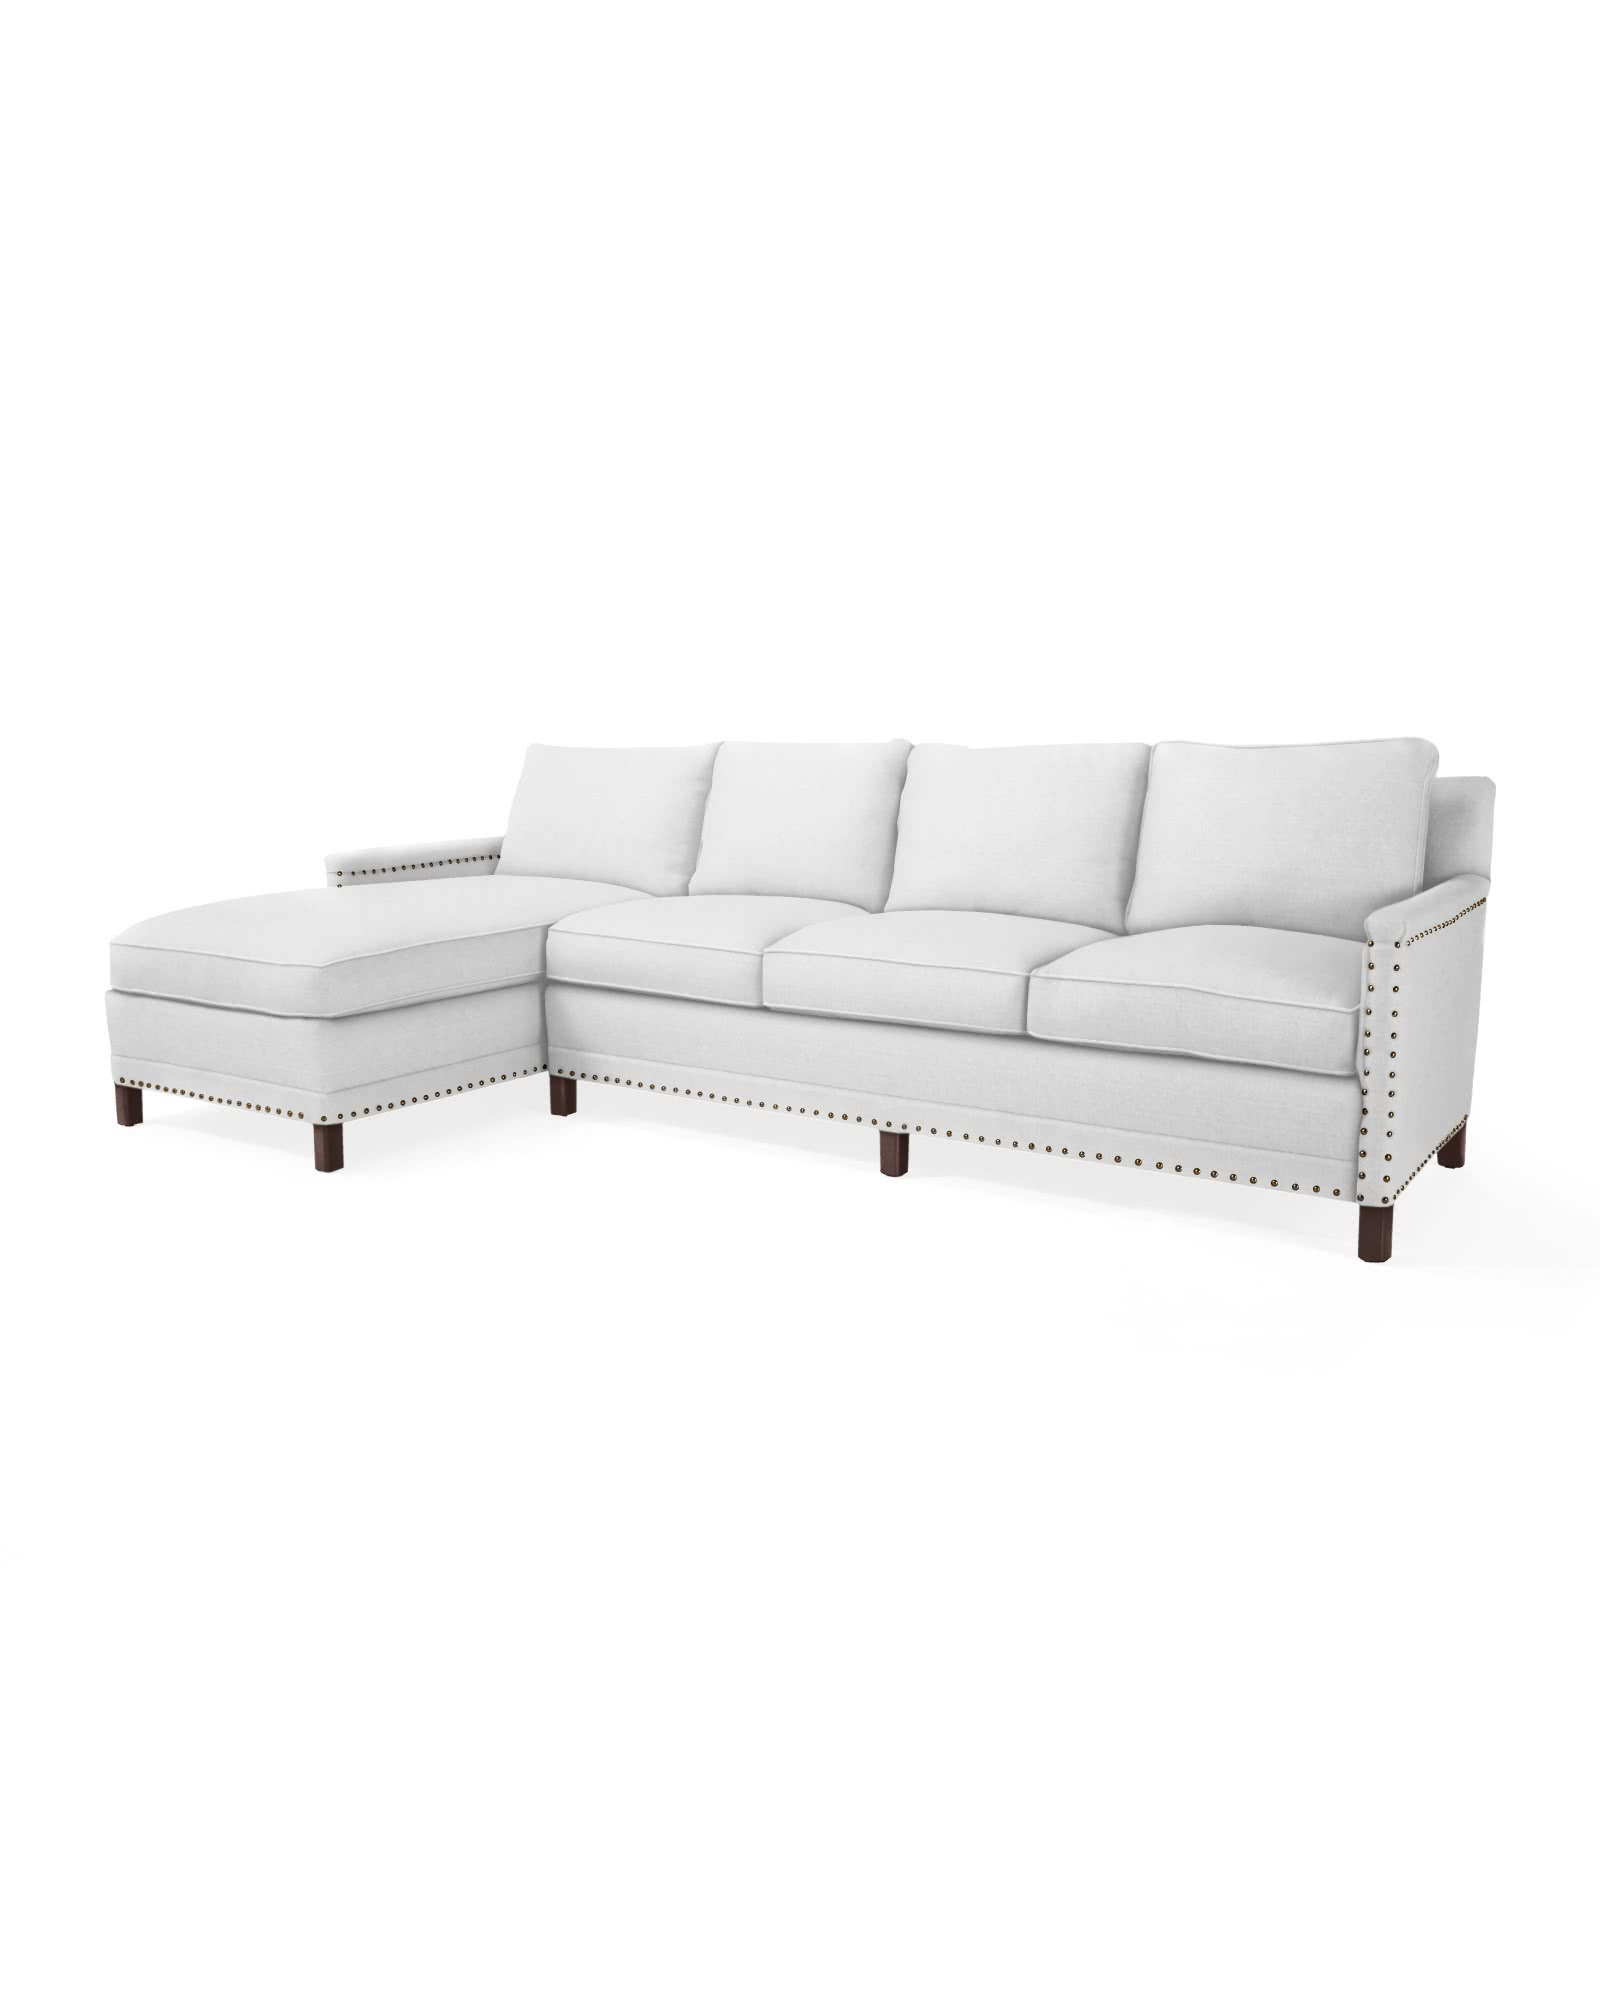 Spruce Street Left-Facing Chaise Sectional with Nailheads